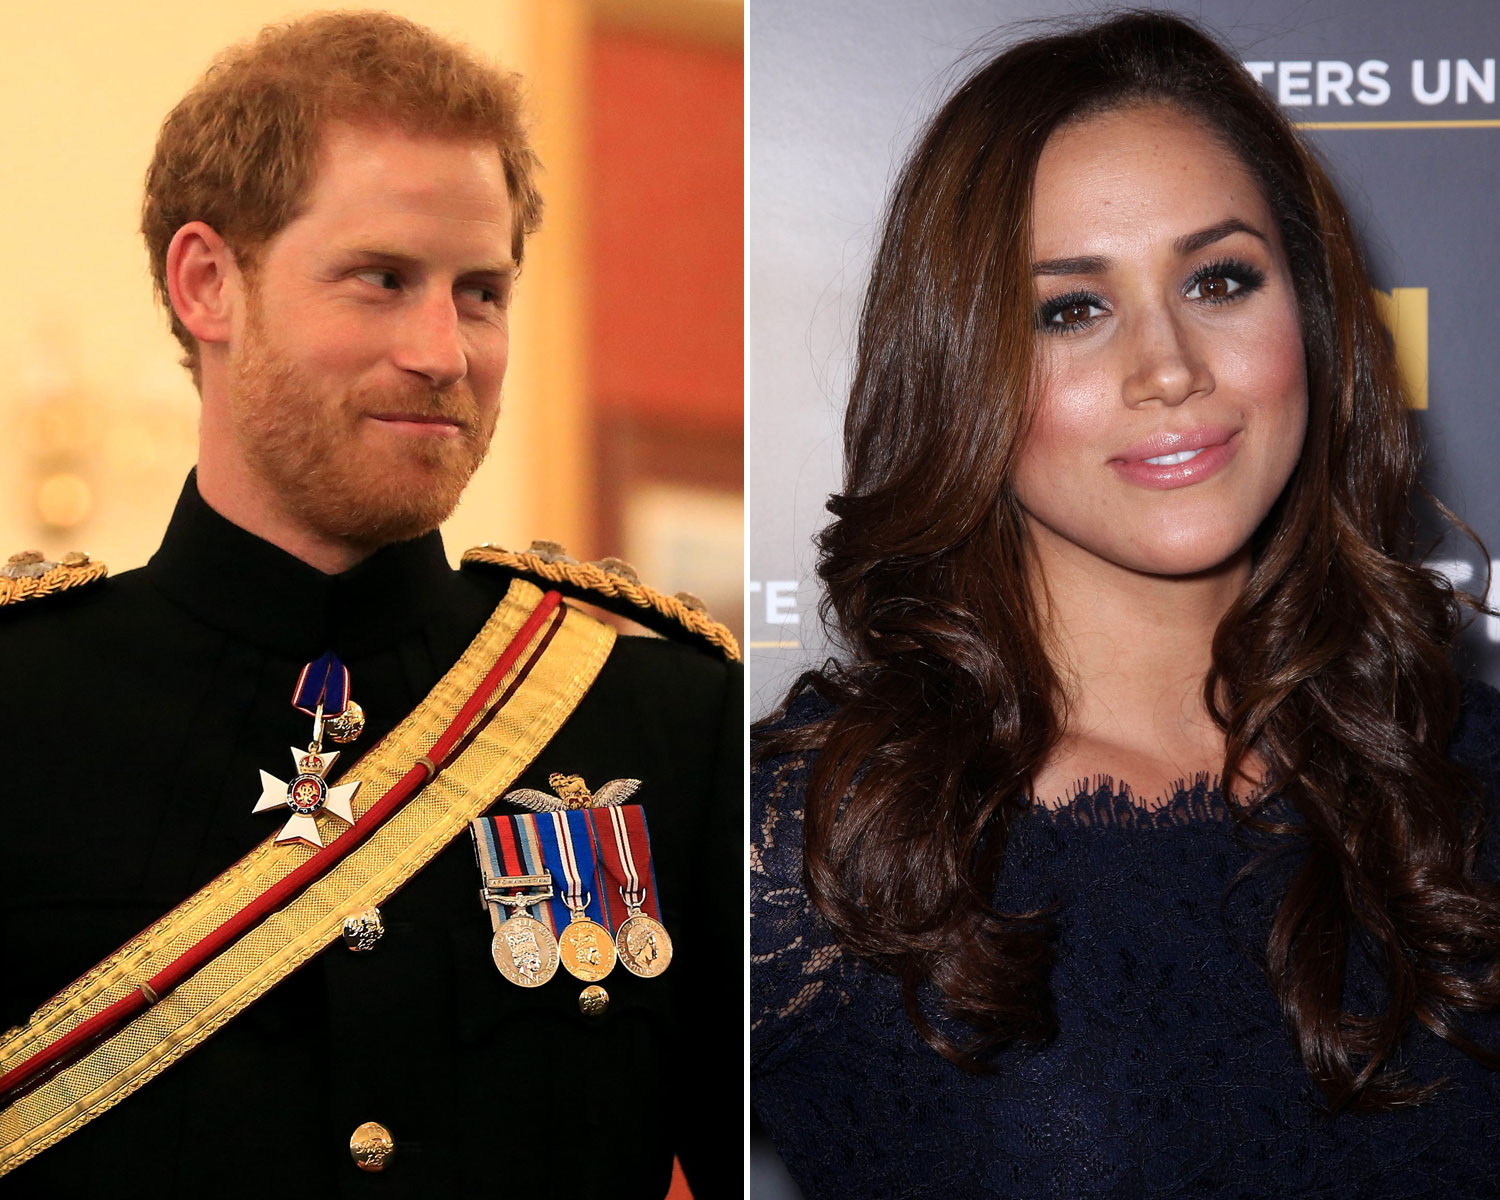 Meghan Markle Declares Her Love For Prince Harry